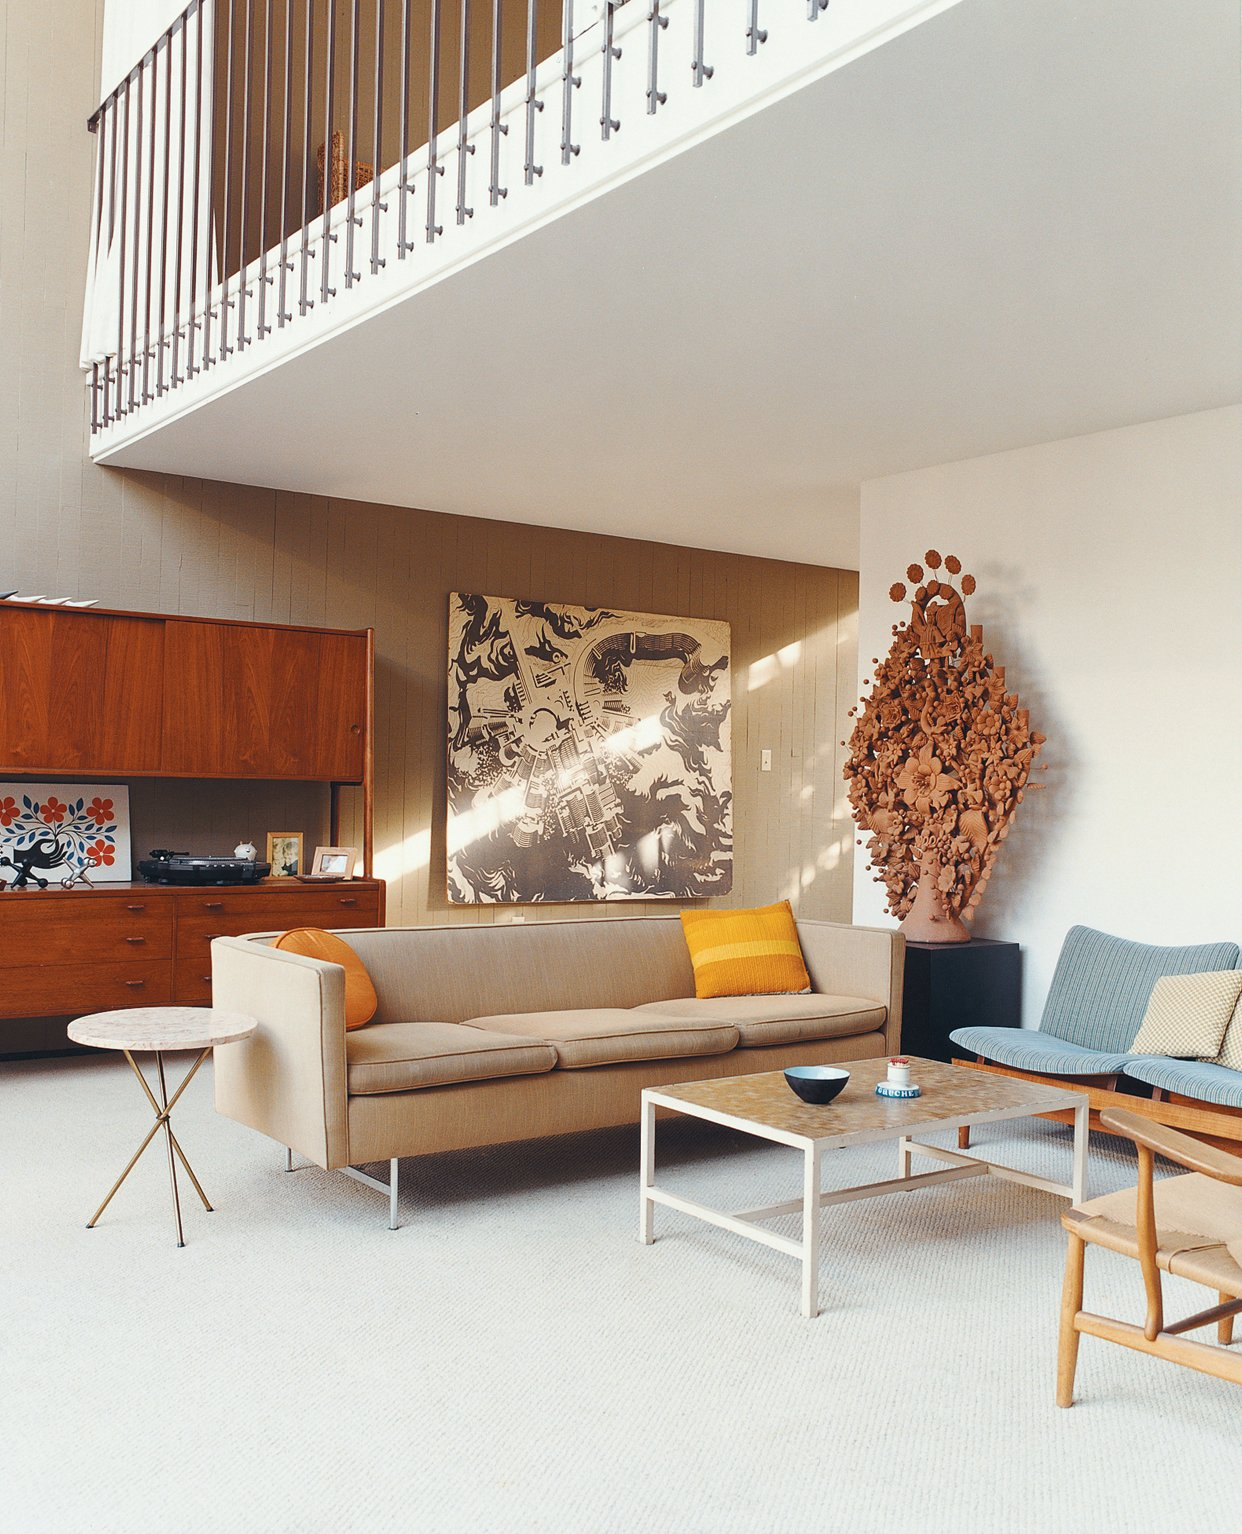 The Wegner CH22 was donated to the home by Joyce and Richard Opdahl. A huge axonometrical rendering by Philo Jacobson hangs in the background. Tagged: Living Room, Coffee Tables, and Sofa.  Midcentury Homes by Dwell from Opdahl Remastered